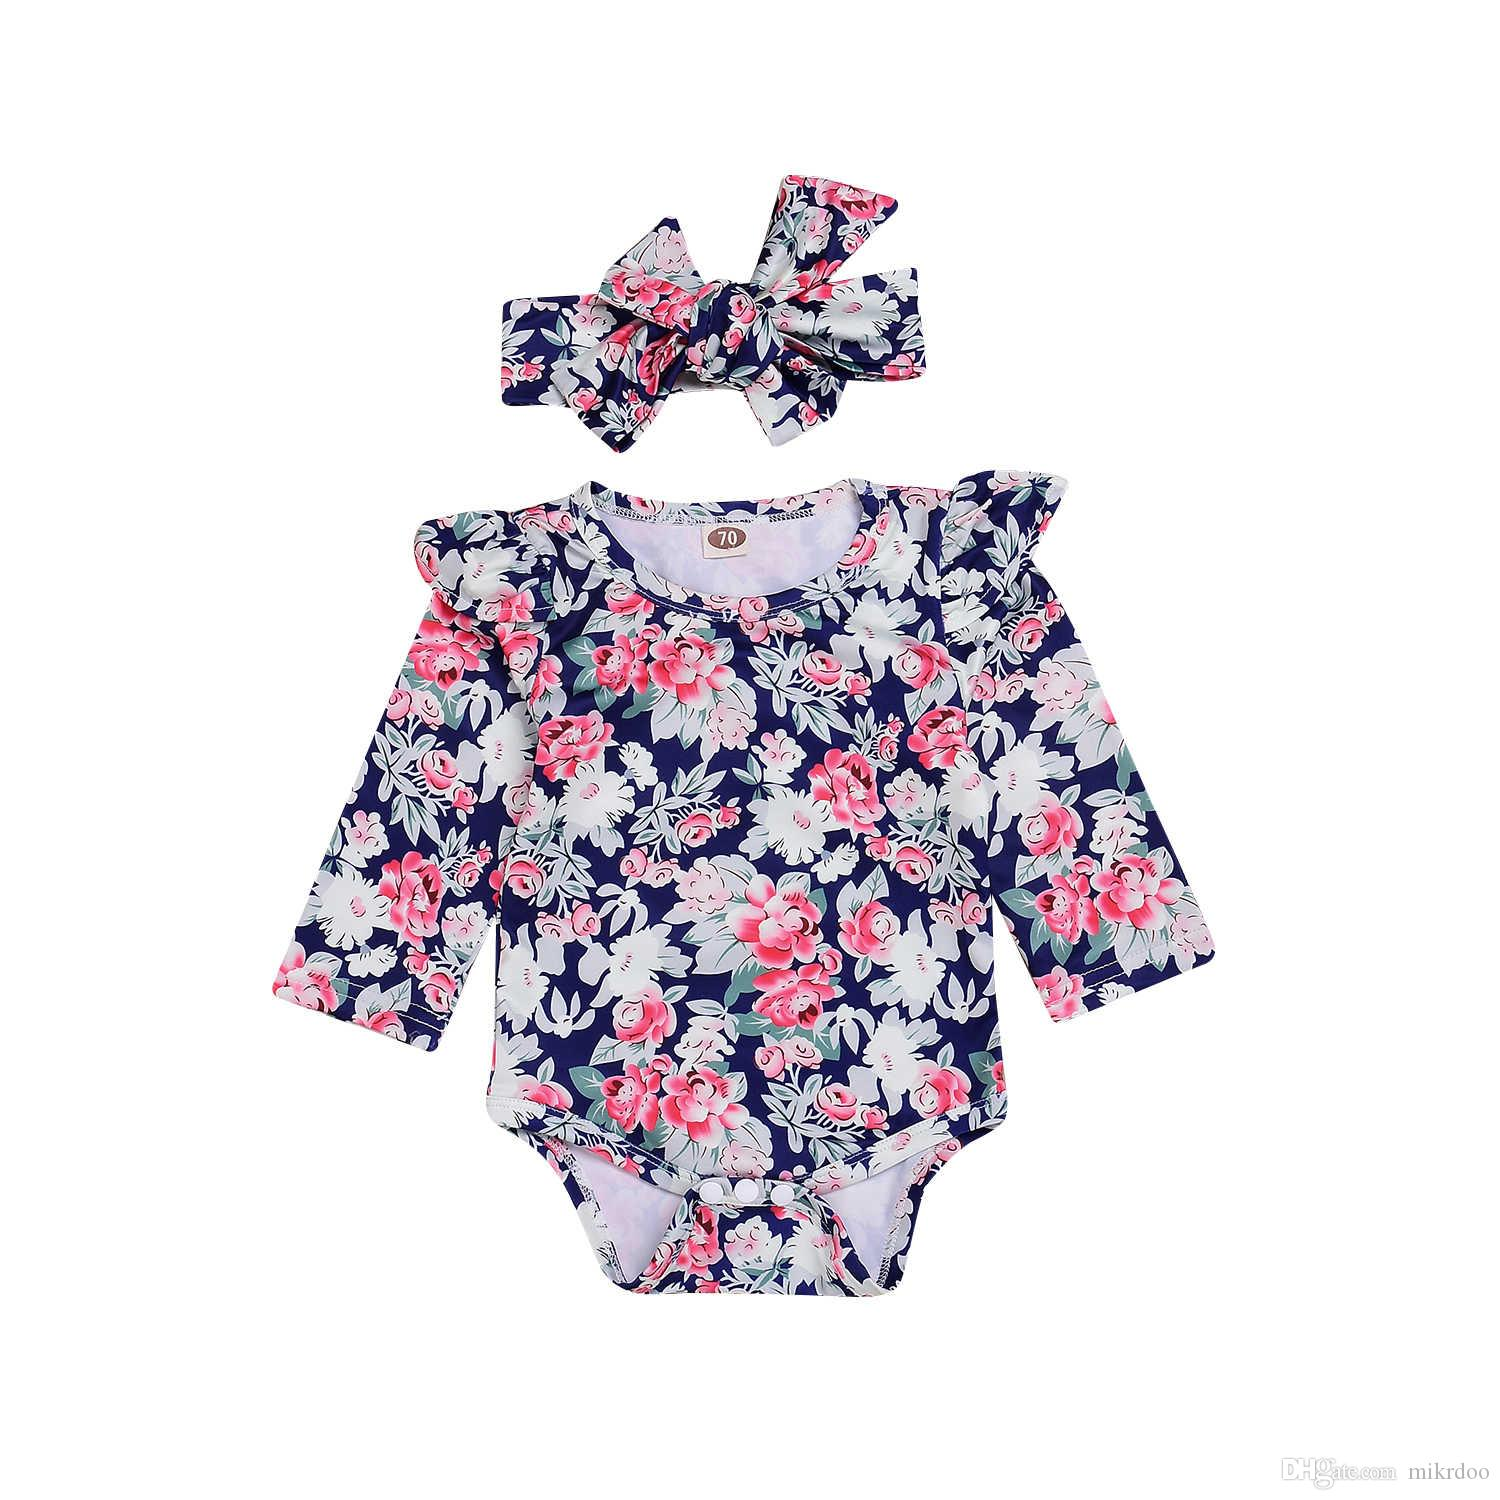 0dcb4aa87e77 2019 Mikrdoo Cute Newborn Baby Girl Floral Romper Jumpsuit Set Long Sleeve  Romper With Headband Kids Clothing Set From Mikrdoo